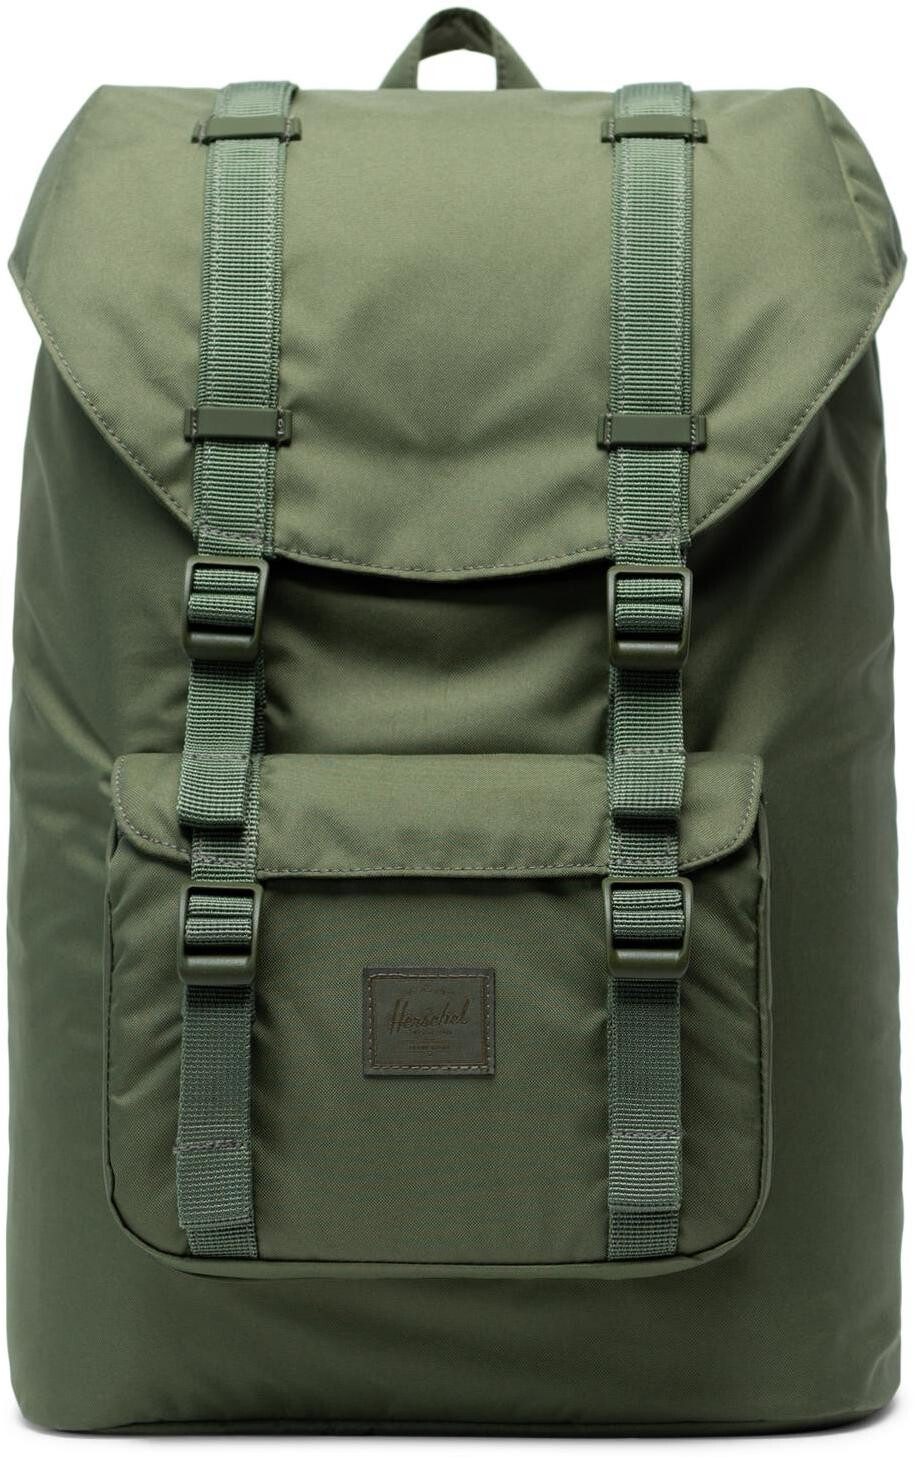 Herschel Little America Mid-Volume Light Rygsæk 17L, cypress (2019) | Travel bags